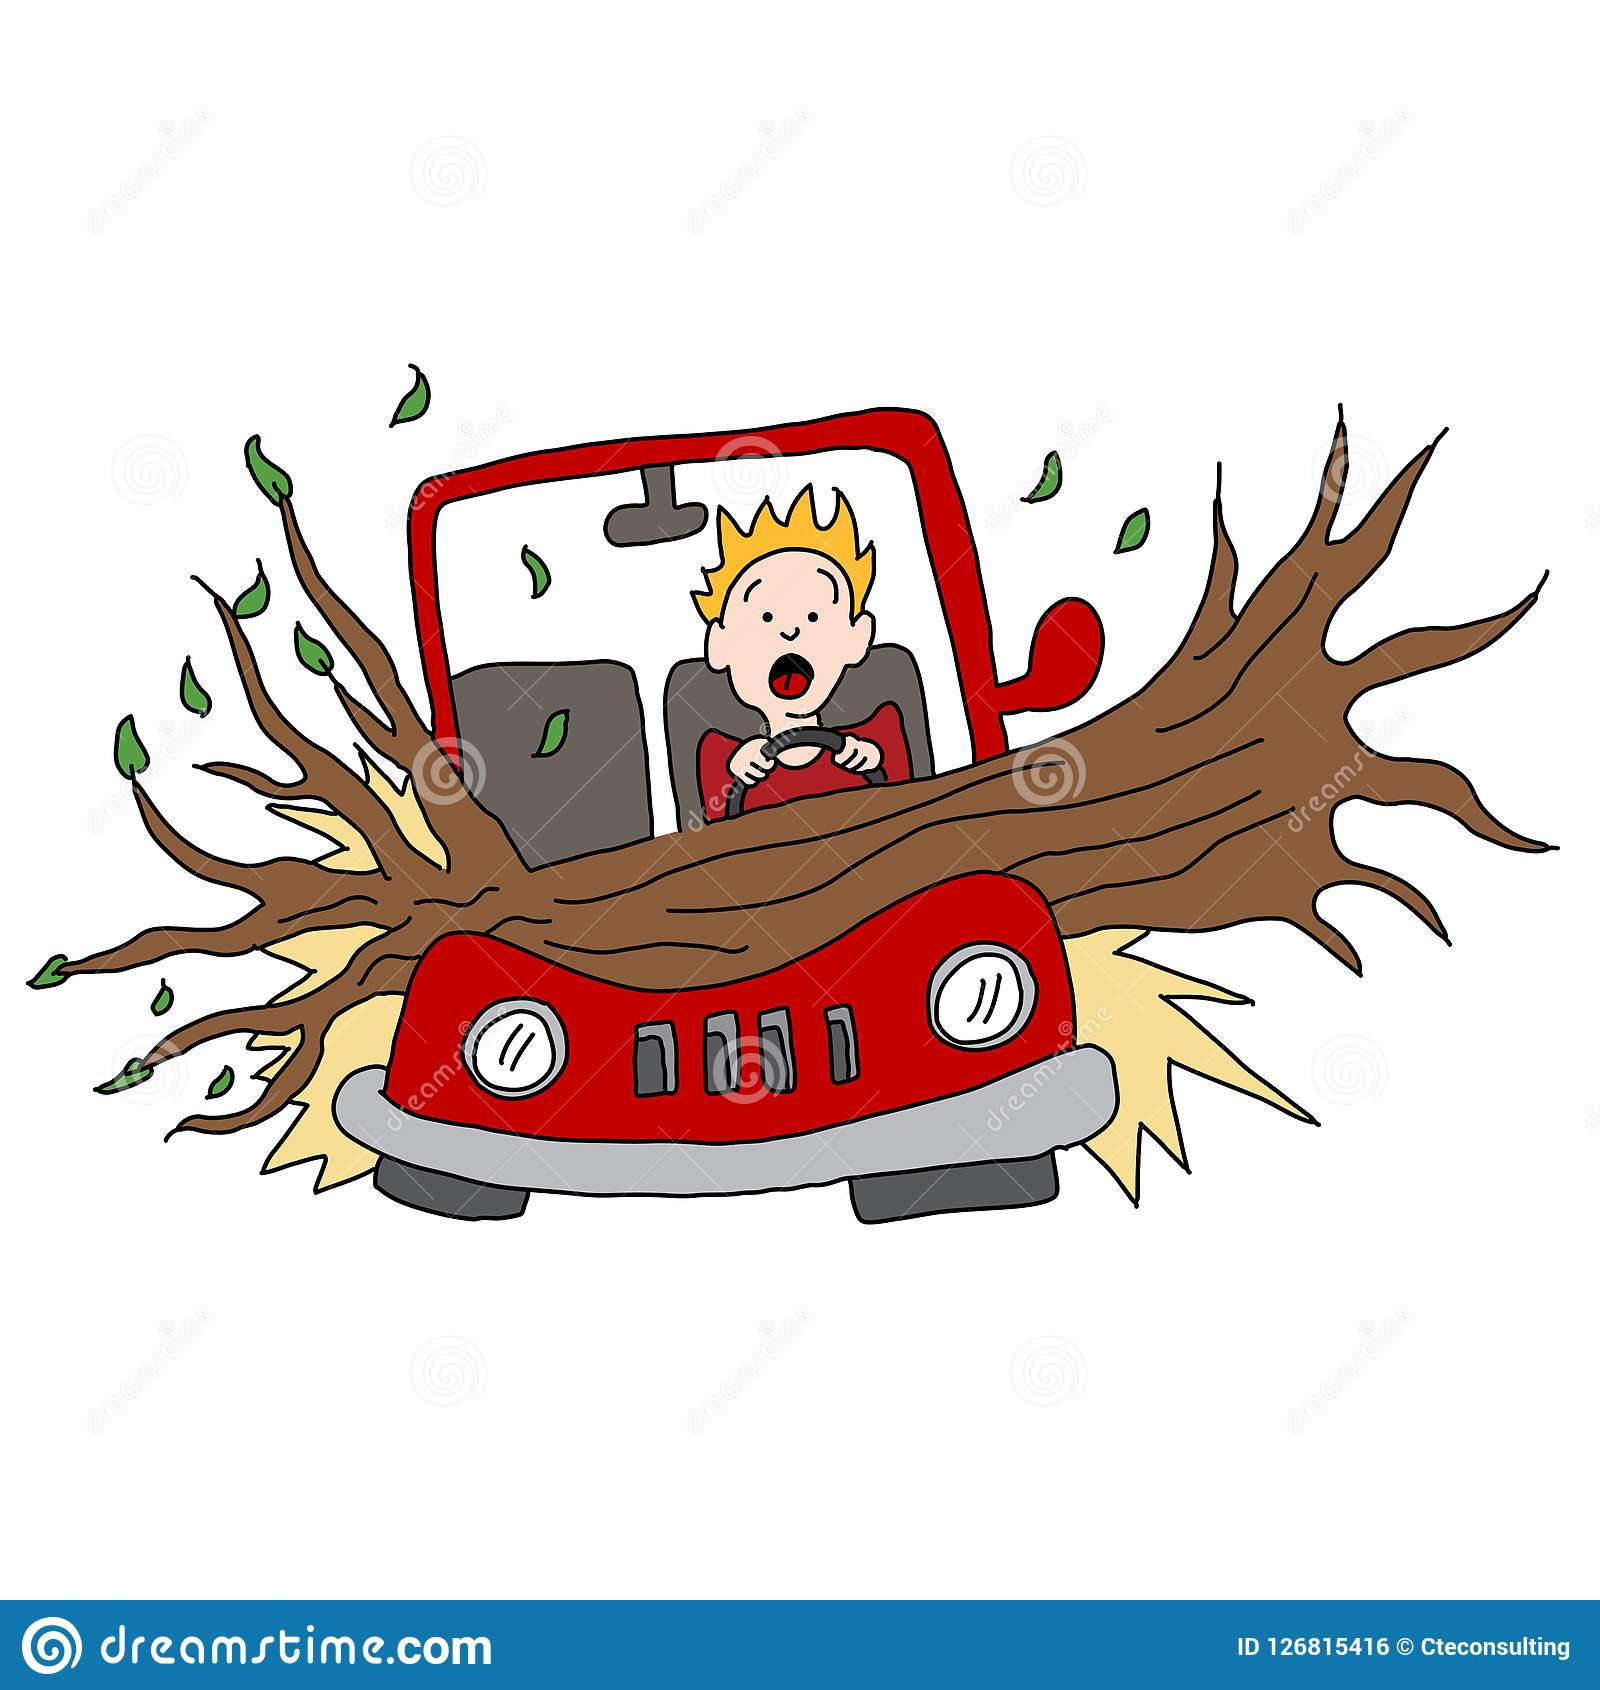 Tree Branch Damages Car in Wind Storm